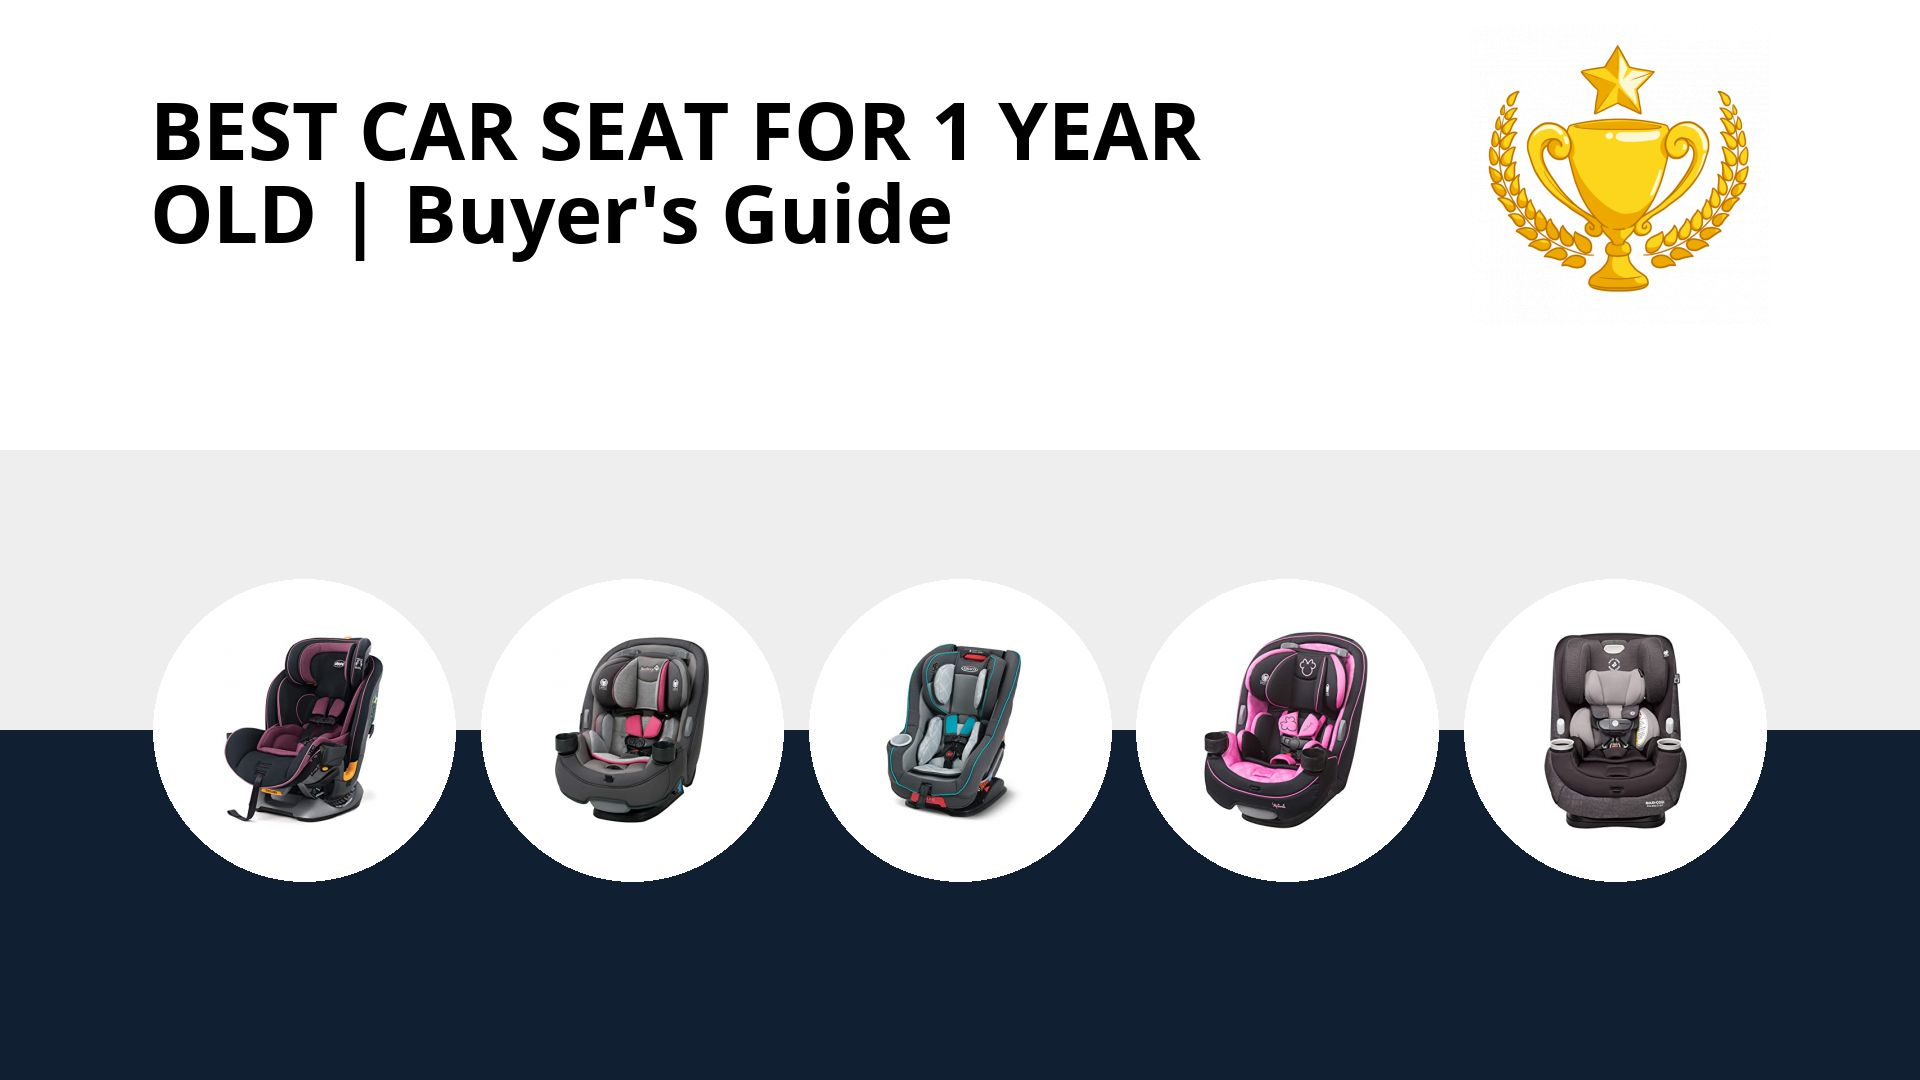 Best Car Seat For 1 Year Old: image